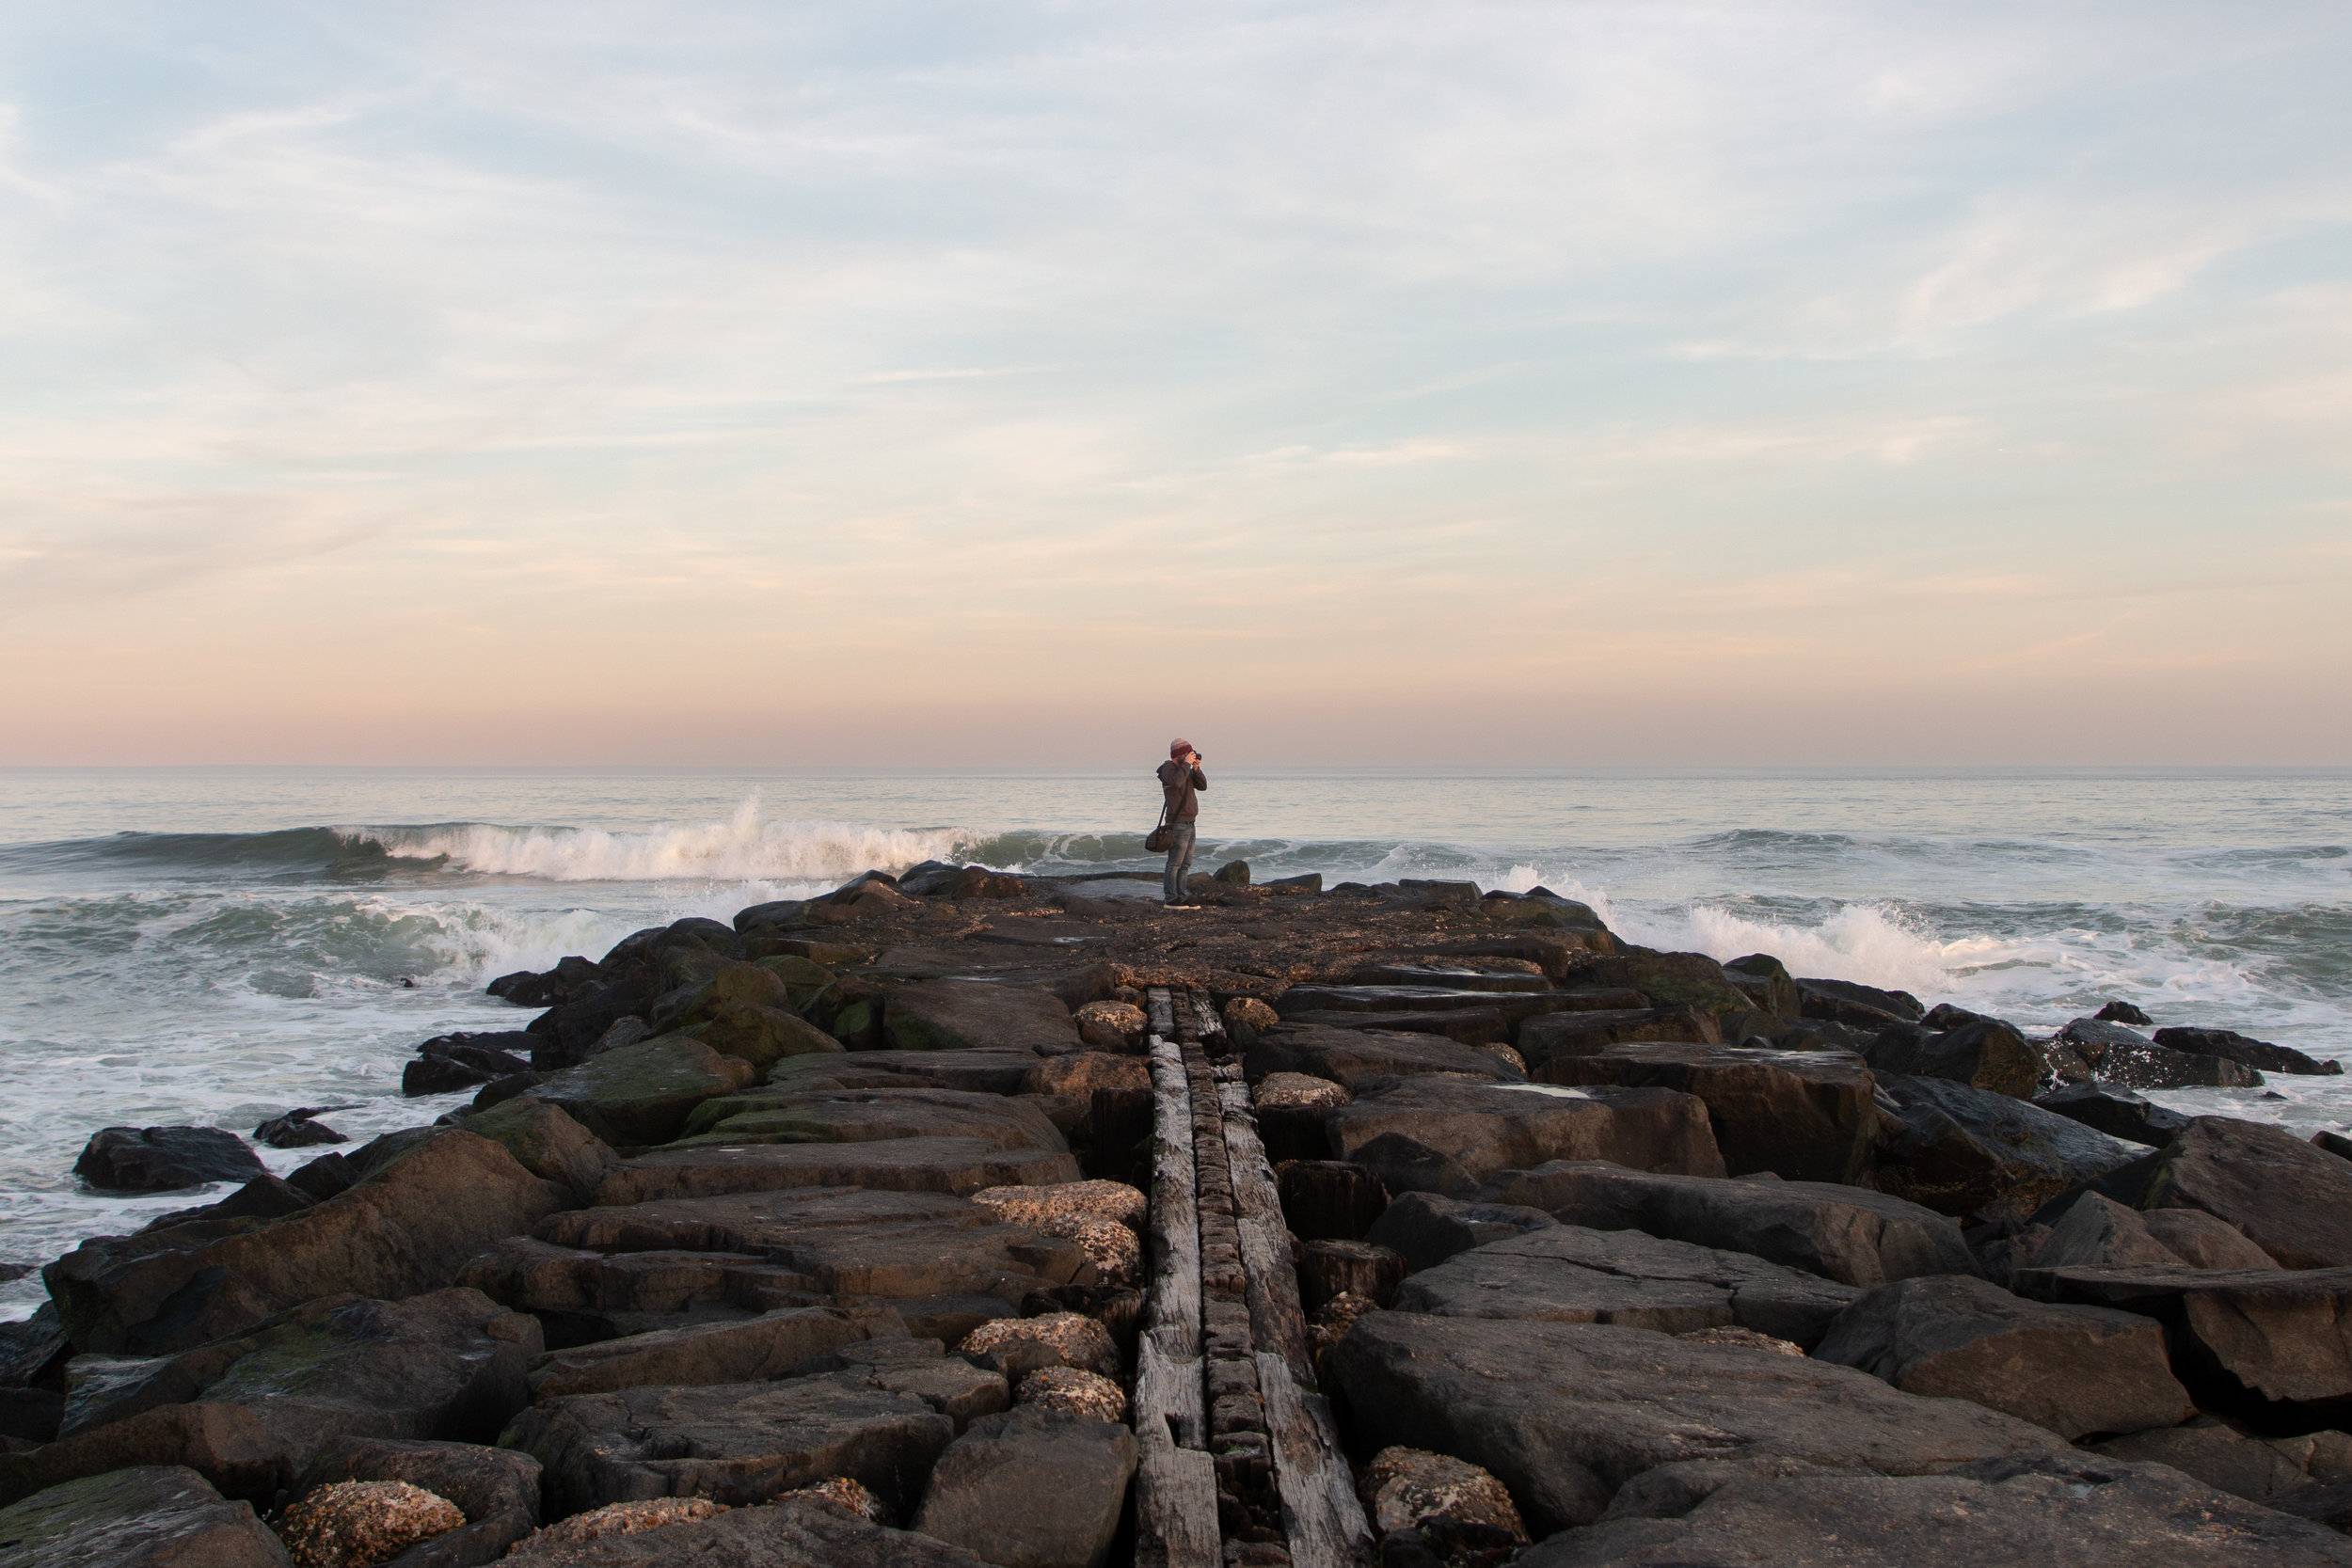 Man standing on rocks at sunset in Asbury Park, New Jersey. Photo by Kayleigh Ann Archbold.